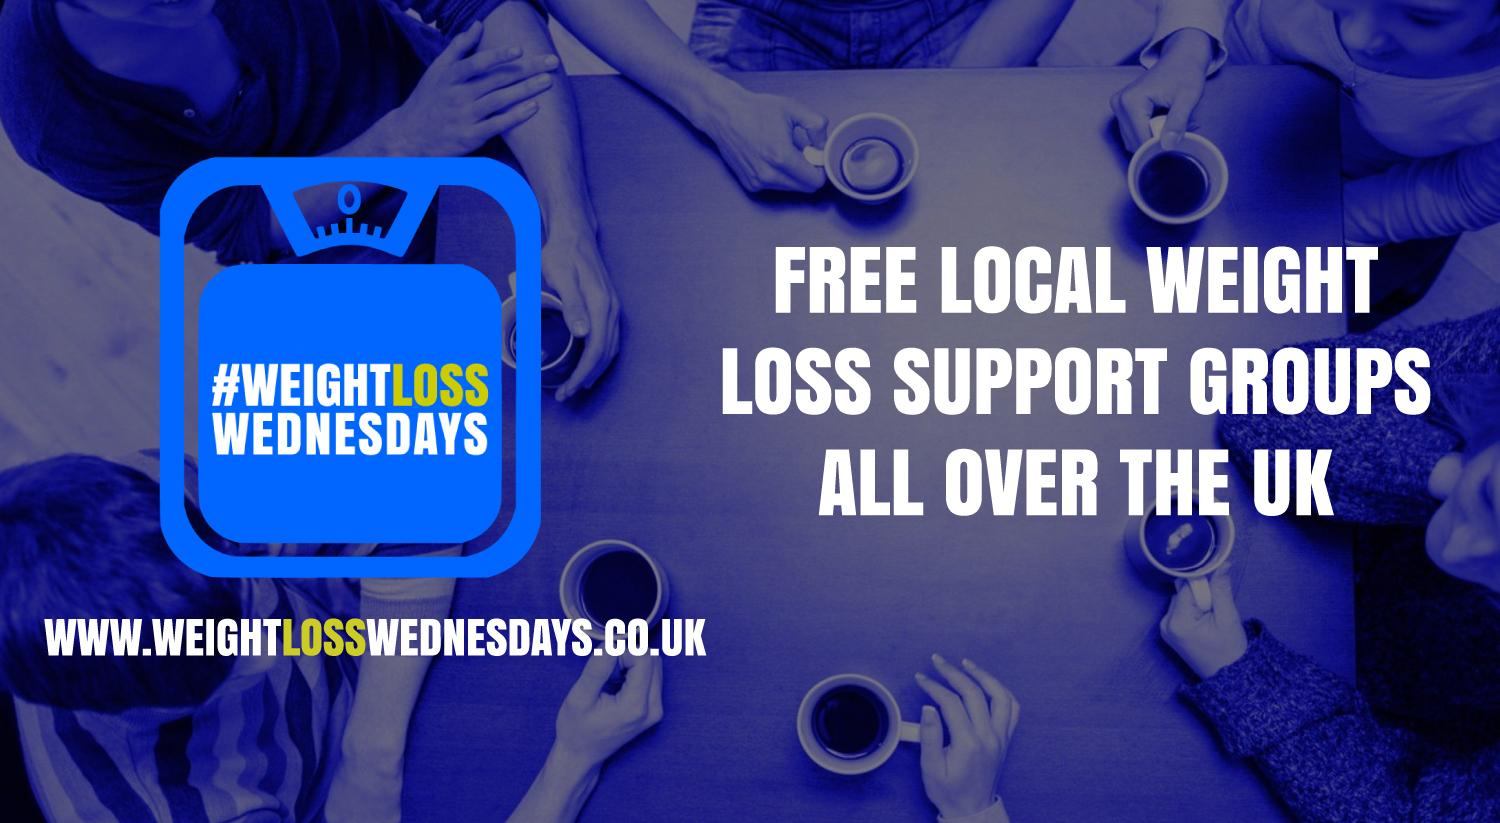 WEIGHT LOSS WEDNESDAYS! Free weekly support group in Rotherham